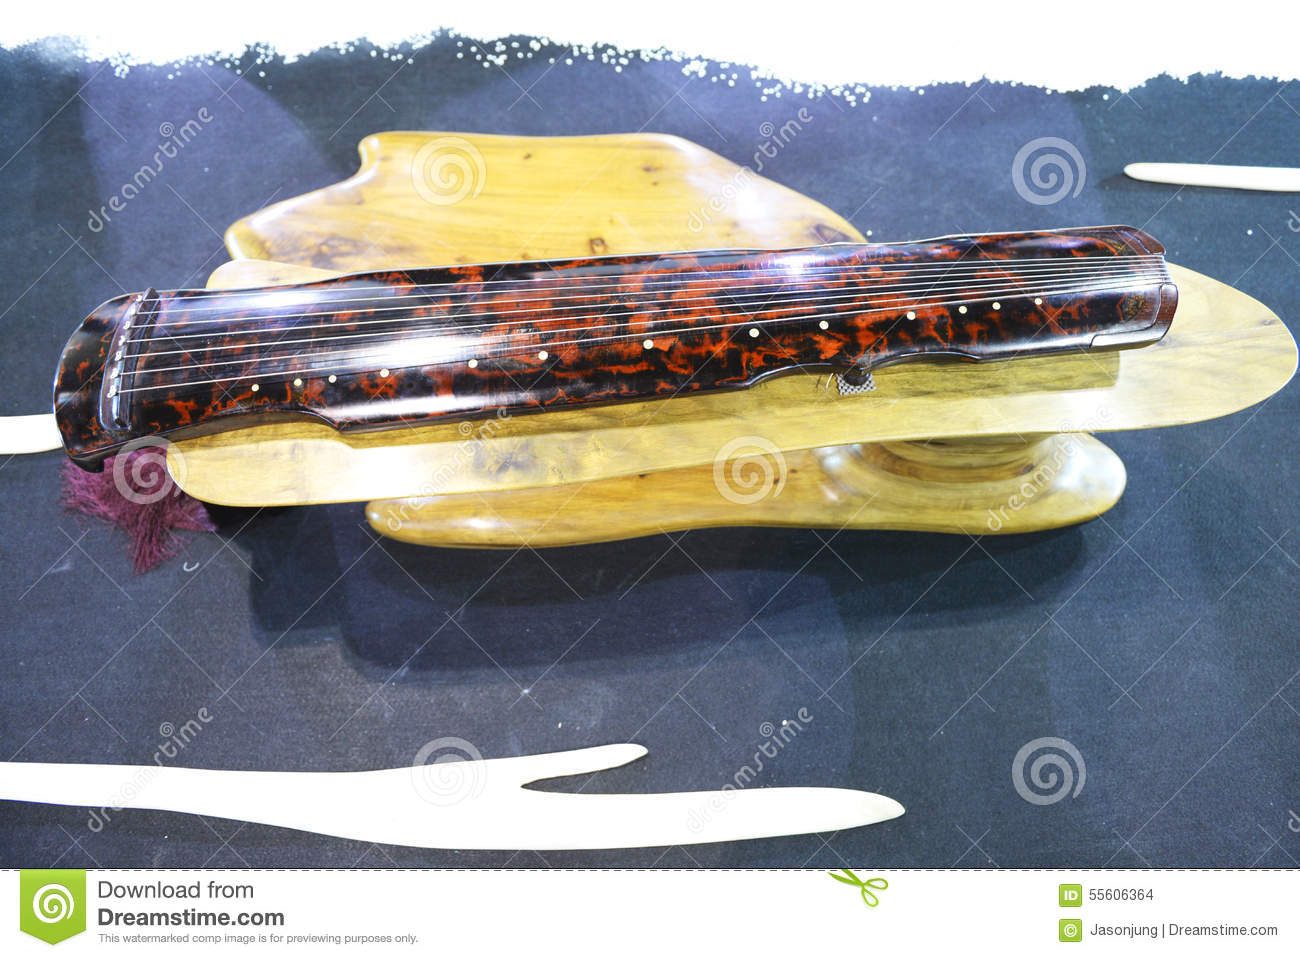 Chinese Ancient Music Instrument Guqin Stock Photo - Image ...  Chinese Ancient...